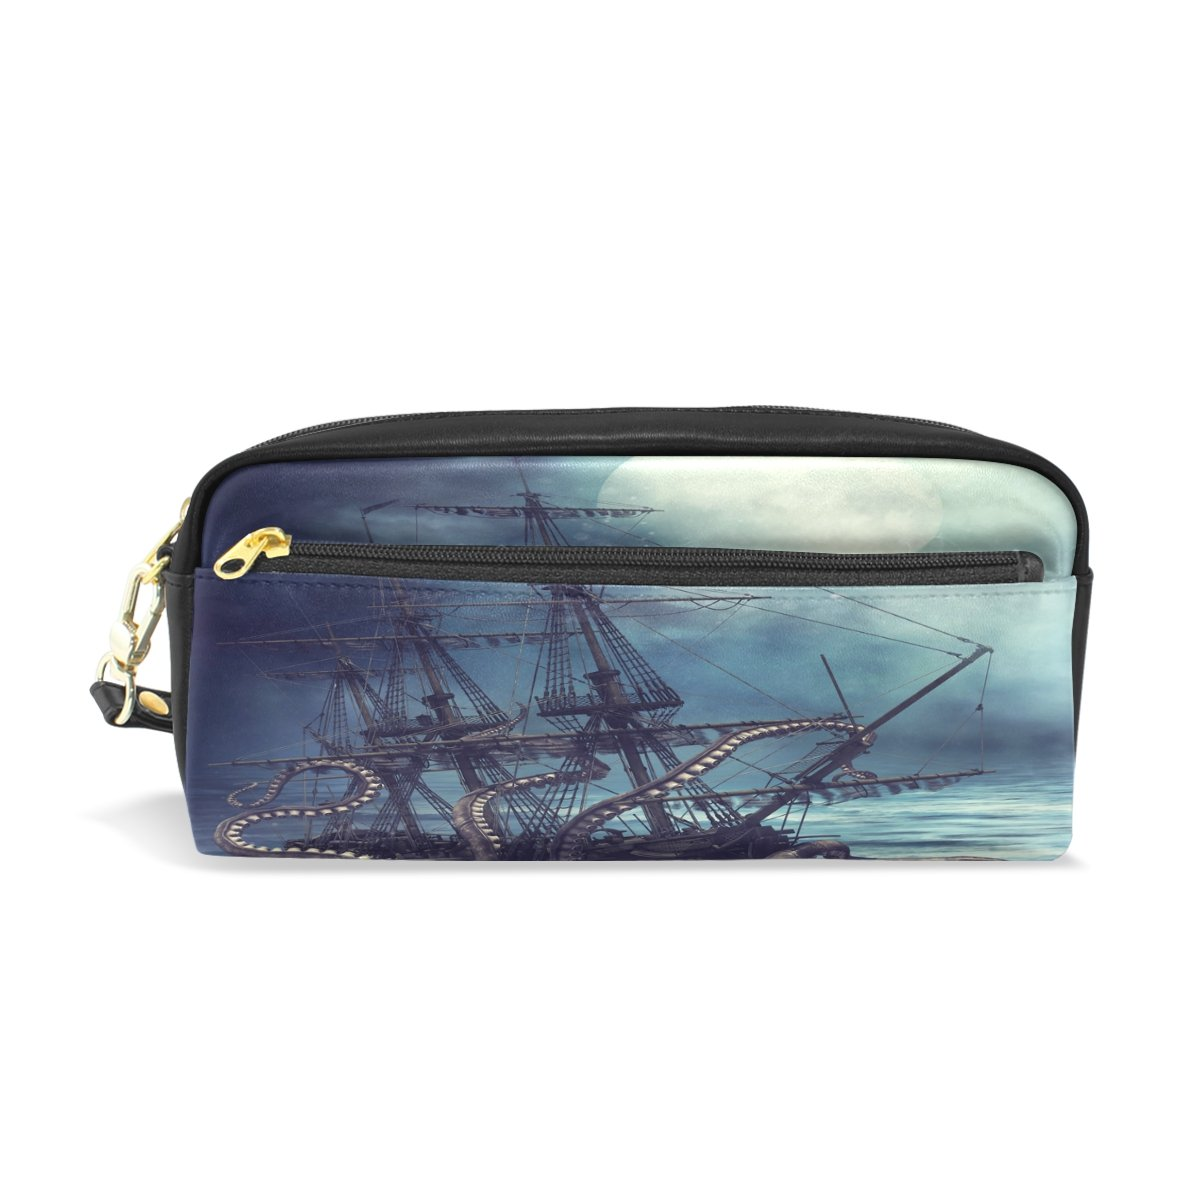 ShineSnow A Pirate Ship Pulled Into Water by Octopus Tentacle Student Pen Pencil Case, Sea Ocean Monster Animal Office Zipper Coin Storage Organizer Purse Pouch Women Cosmetic Makeup Bag by ShineSnow